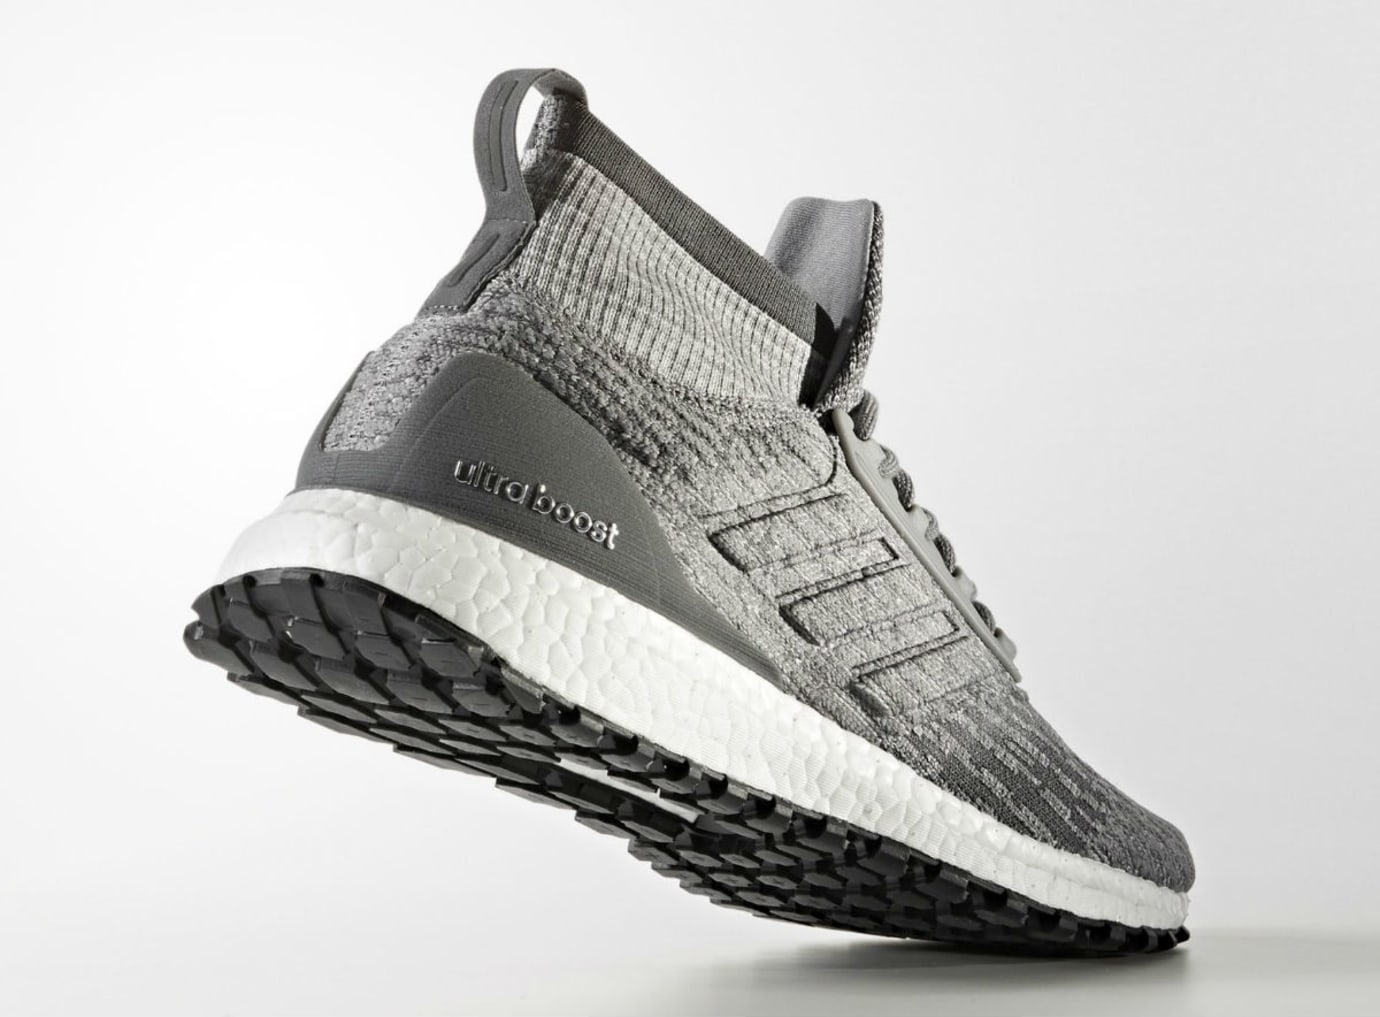 Adidas Ultra Boost ATR Mid Grey Release Date Lateral CG3000